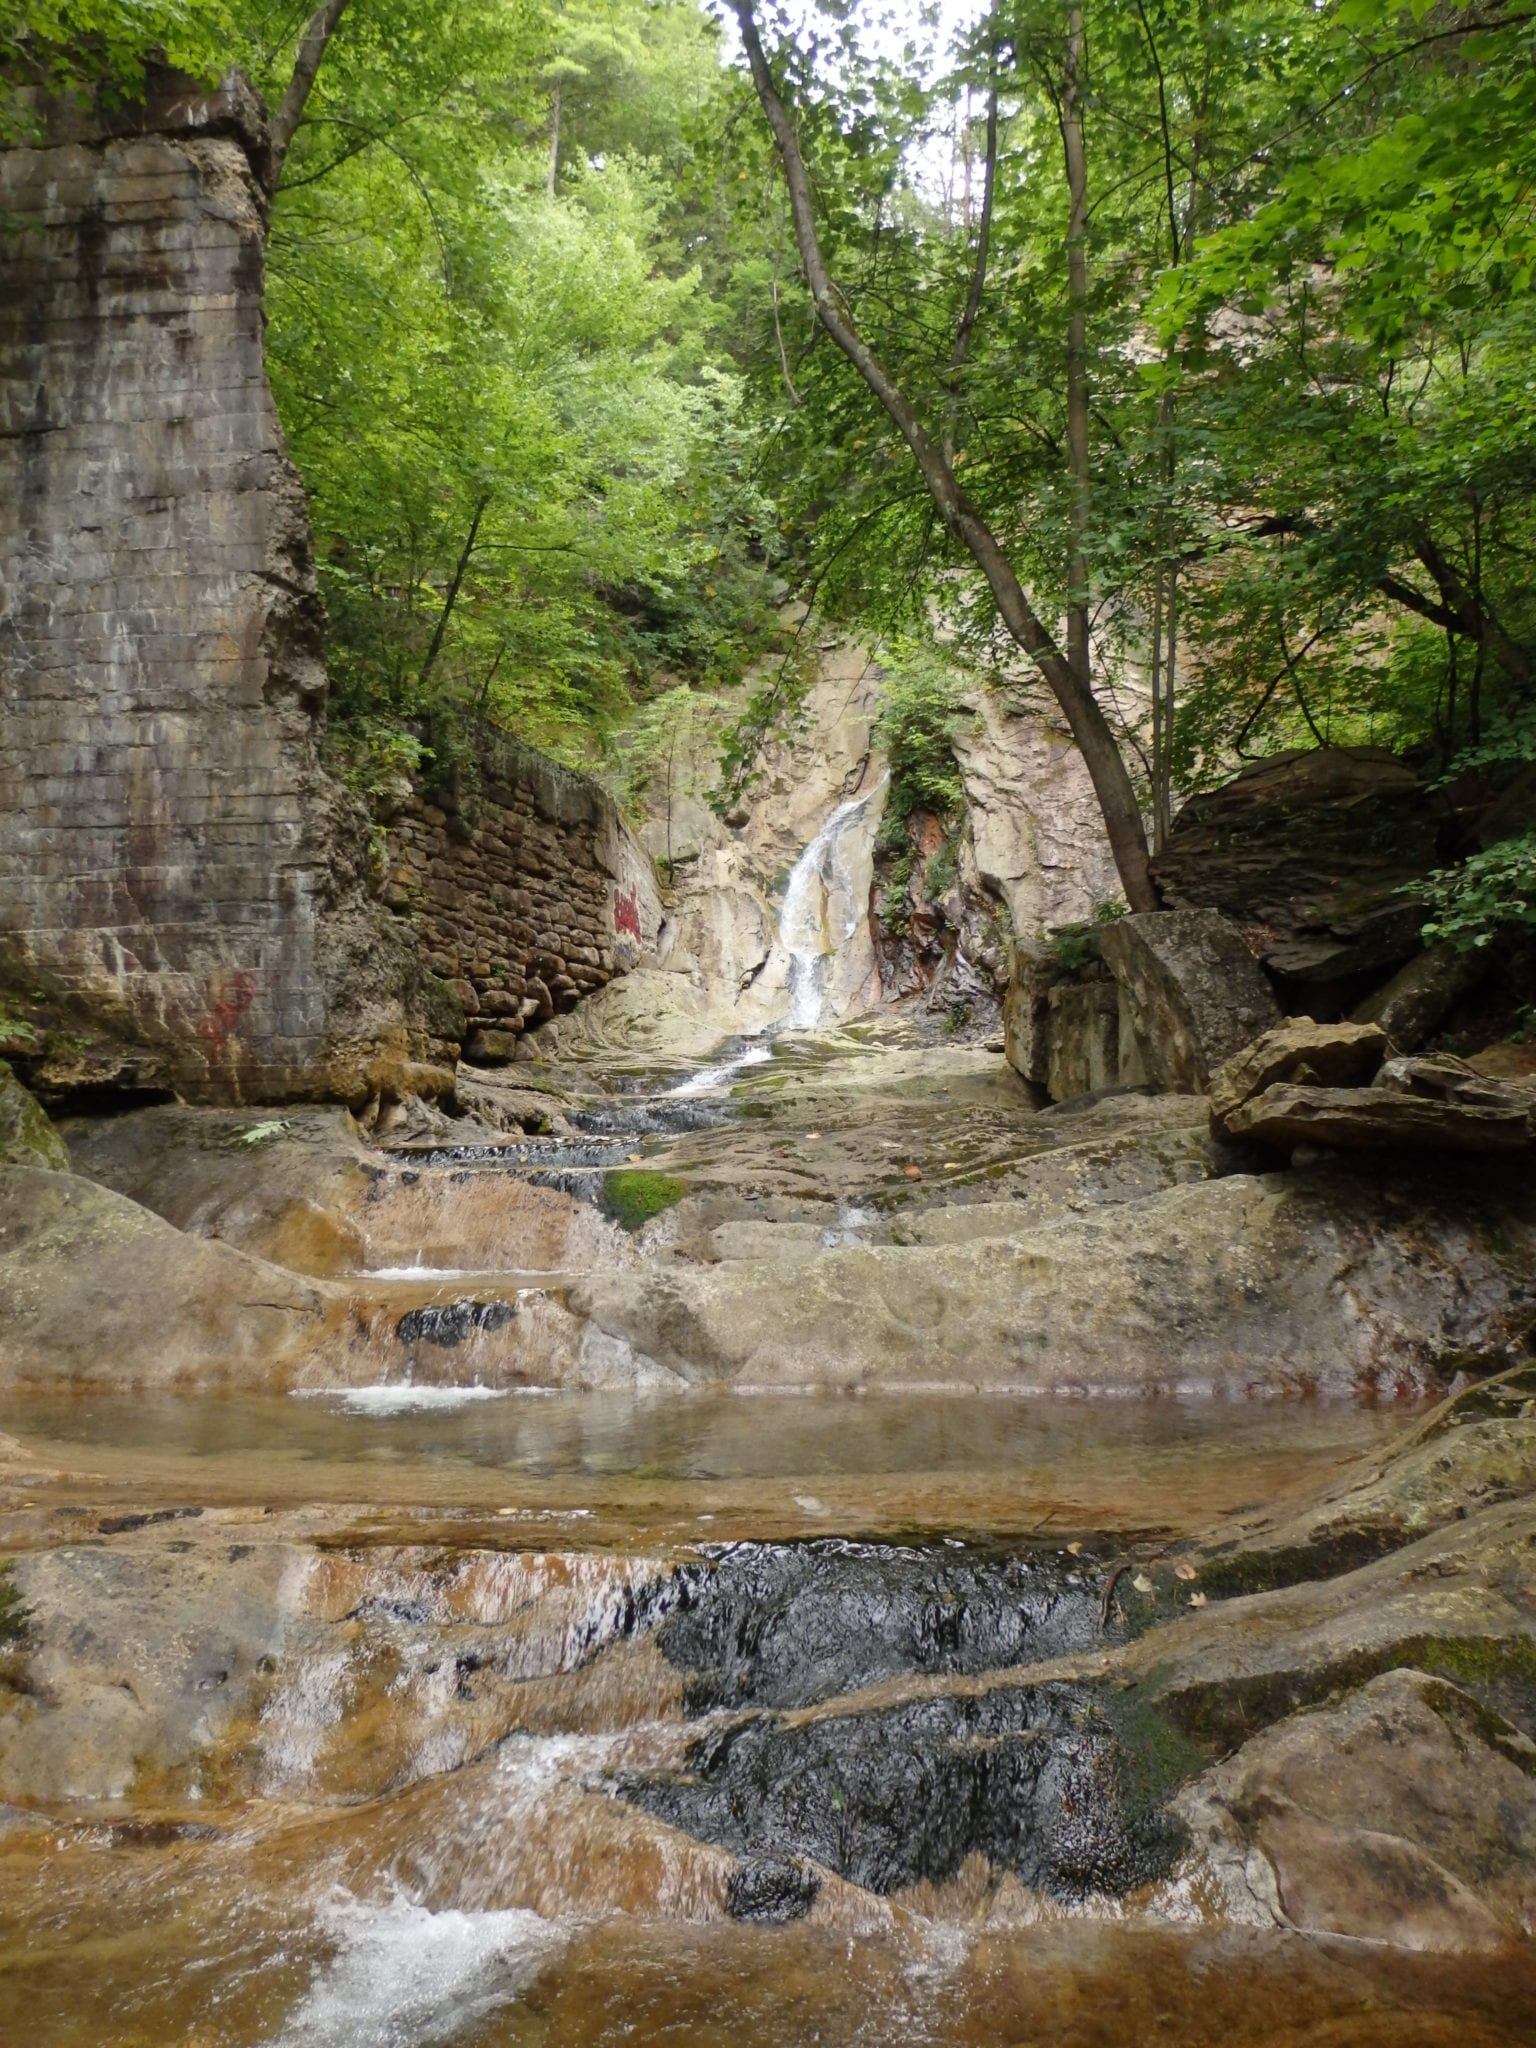 PoestenKill Gorge Park – May 7th Cleanup Event